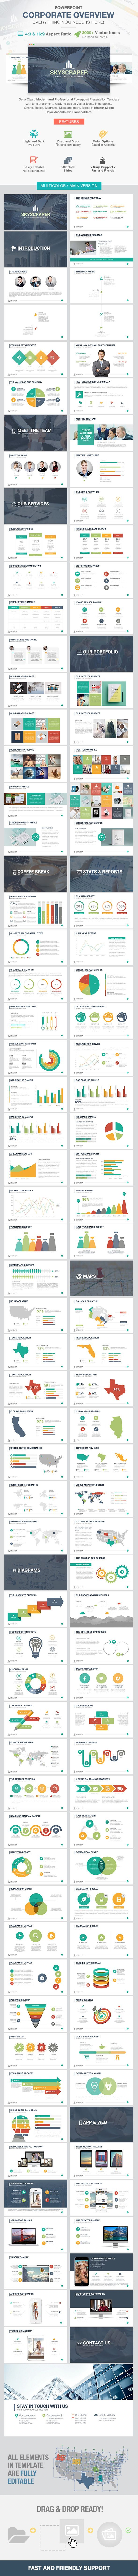 Corporate Overview Powerpoint Template #slides #presentation #design Download: http://graphicriver.net/item/corporate-overview-powerpoint-template/10684827?ref=ksioks